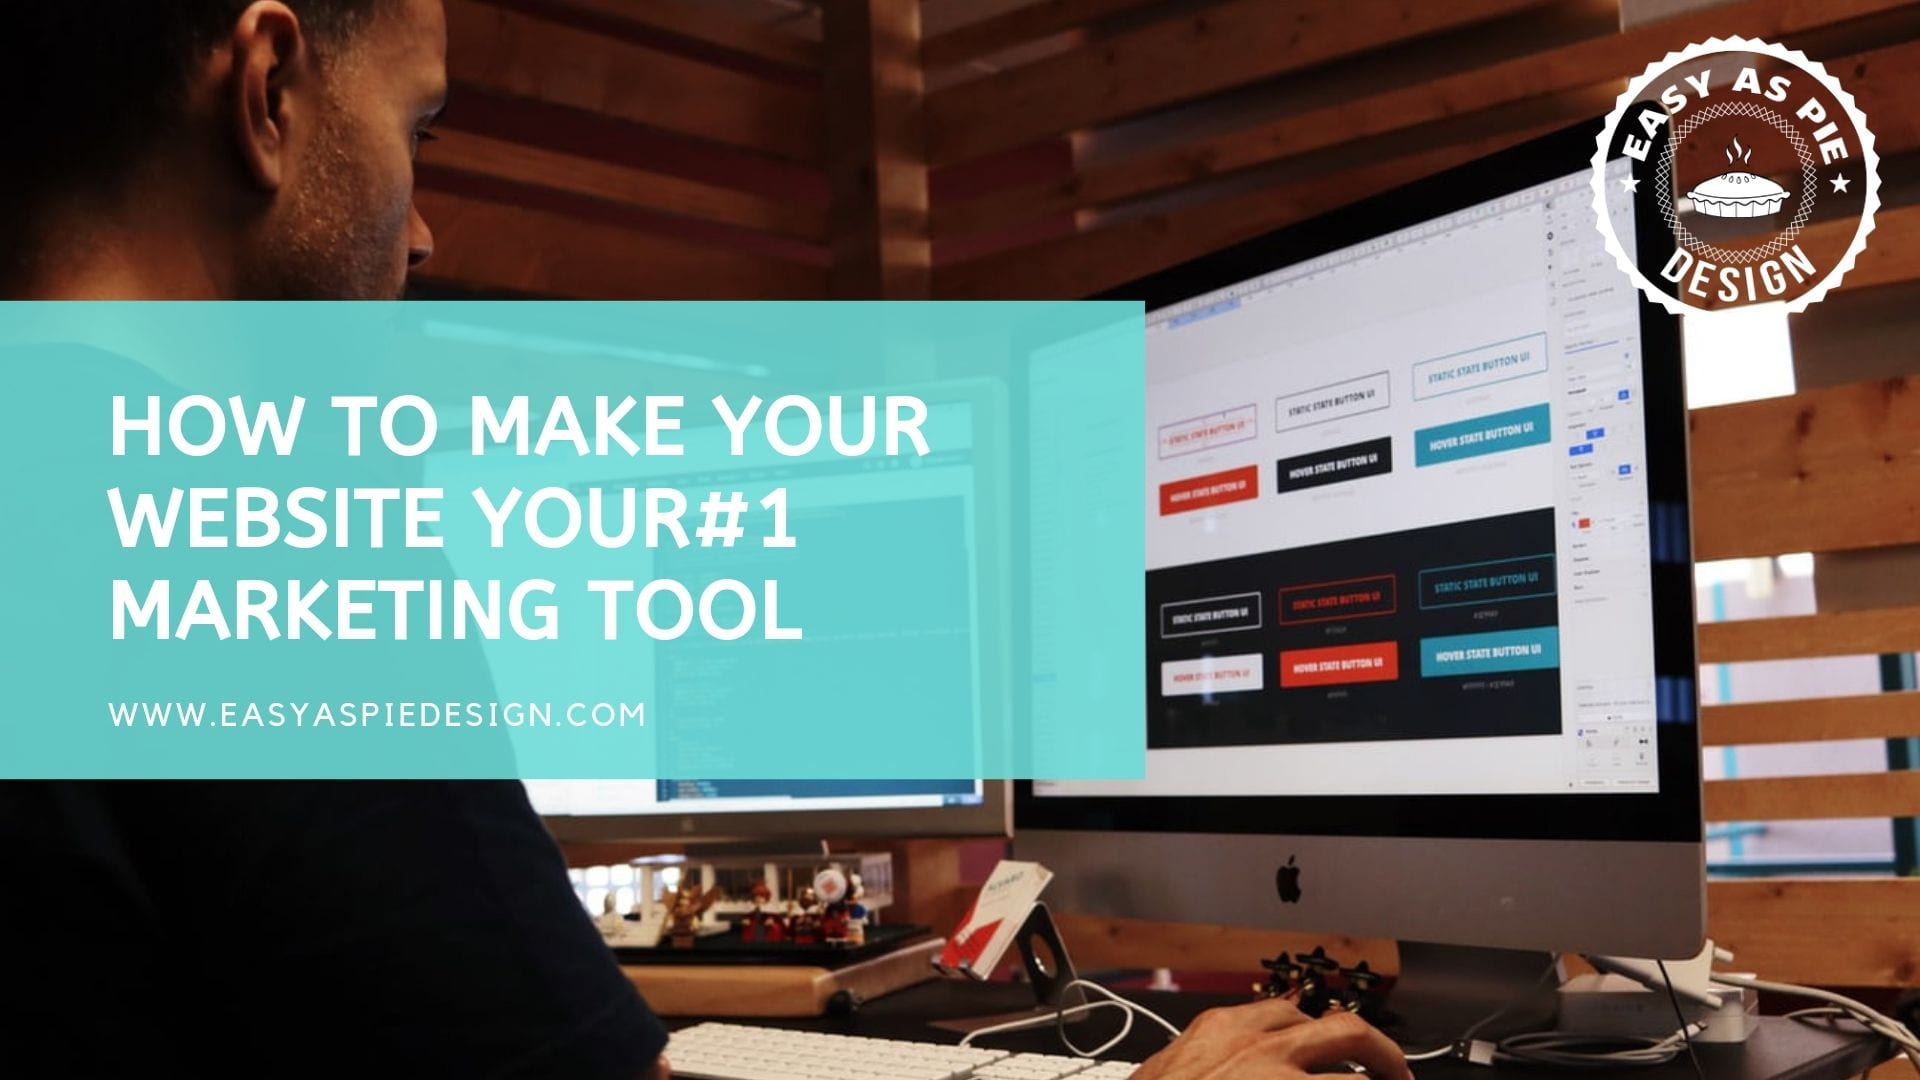 How To Make Your Website is Your #1 Marketing Tool